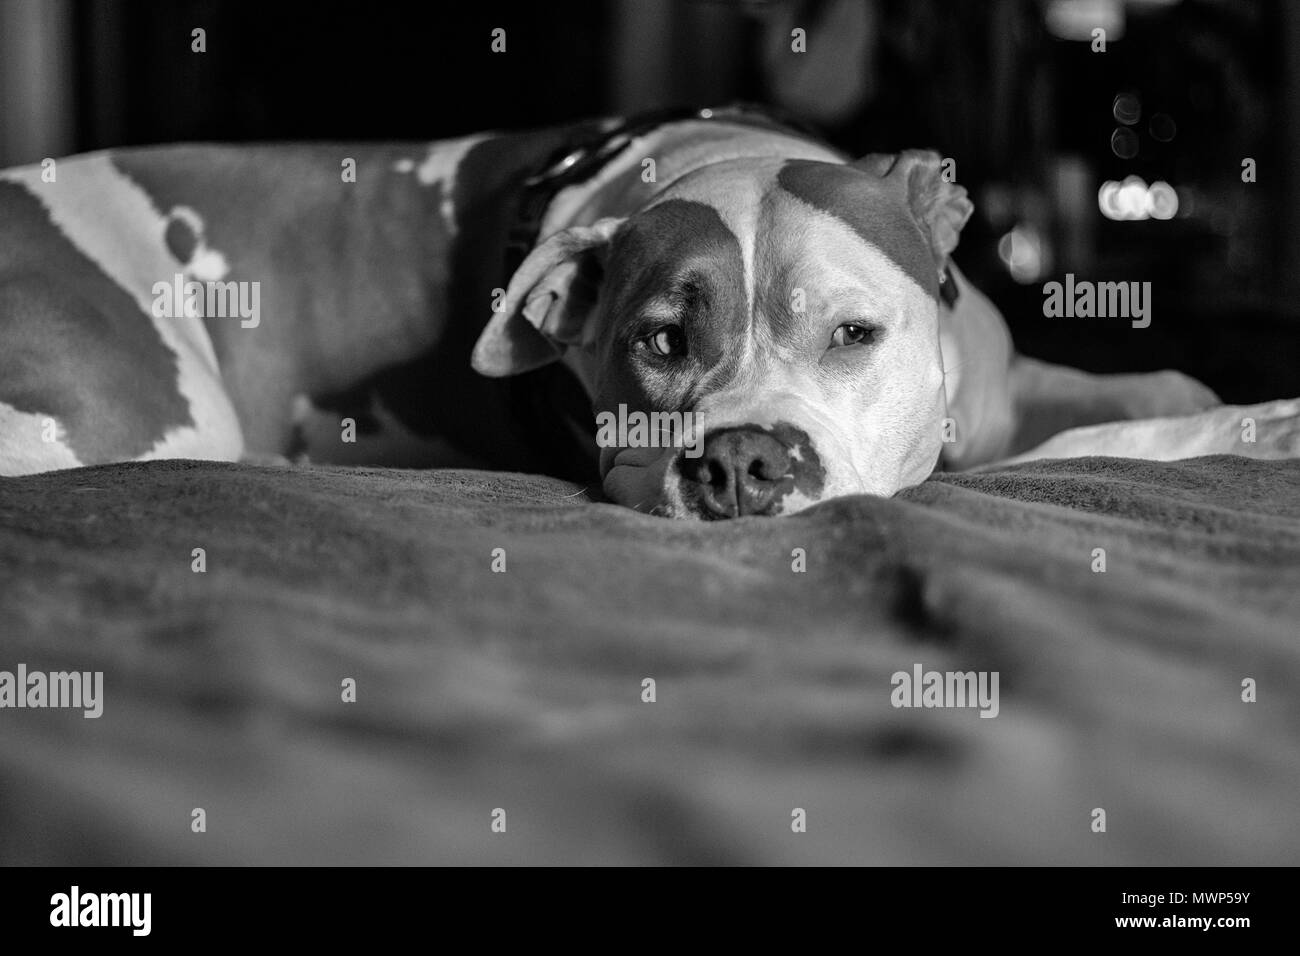 A dog (mixed breed of pitbull terrier) (Canis lupus familiaris) lays on a sea of blanket on a bed - Stock Image